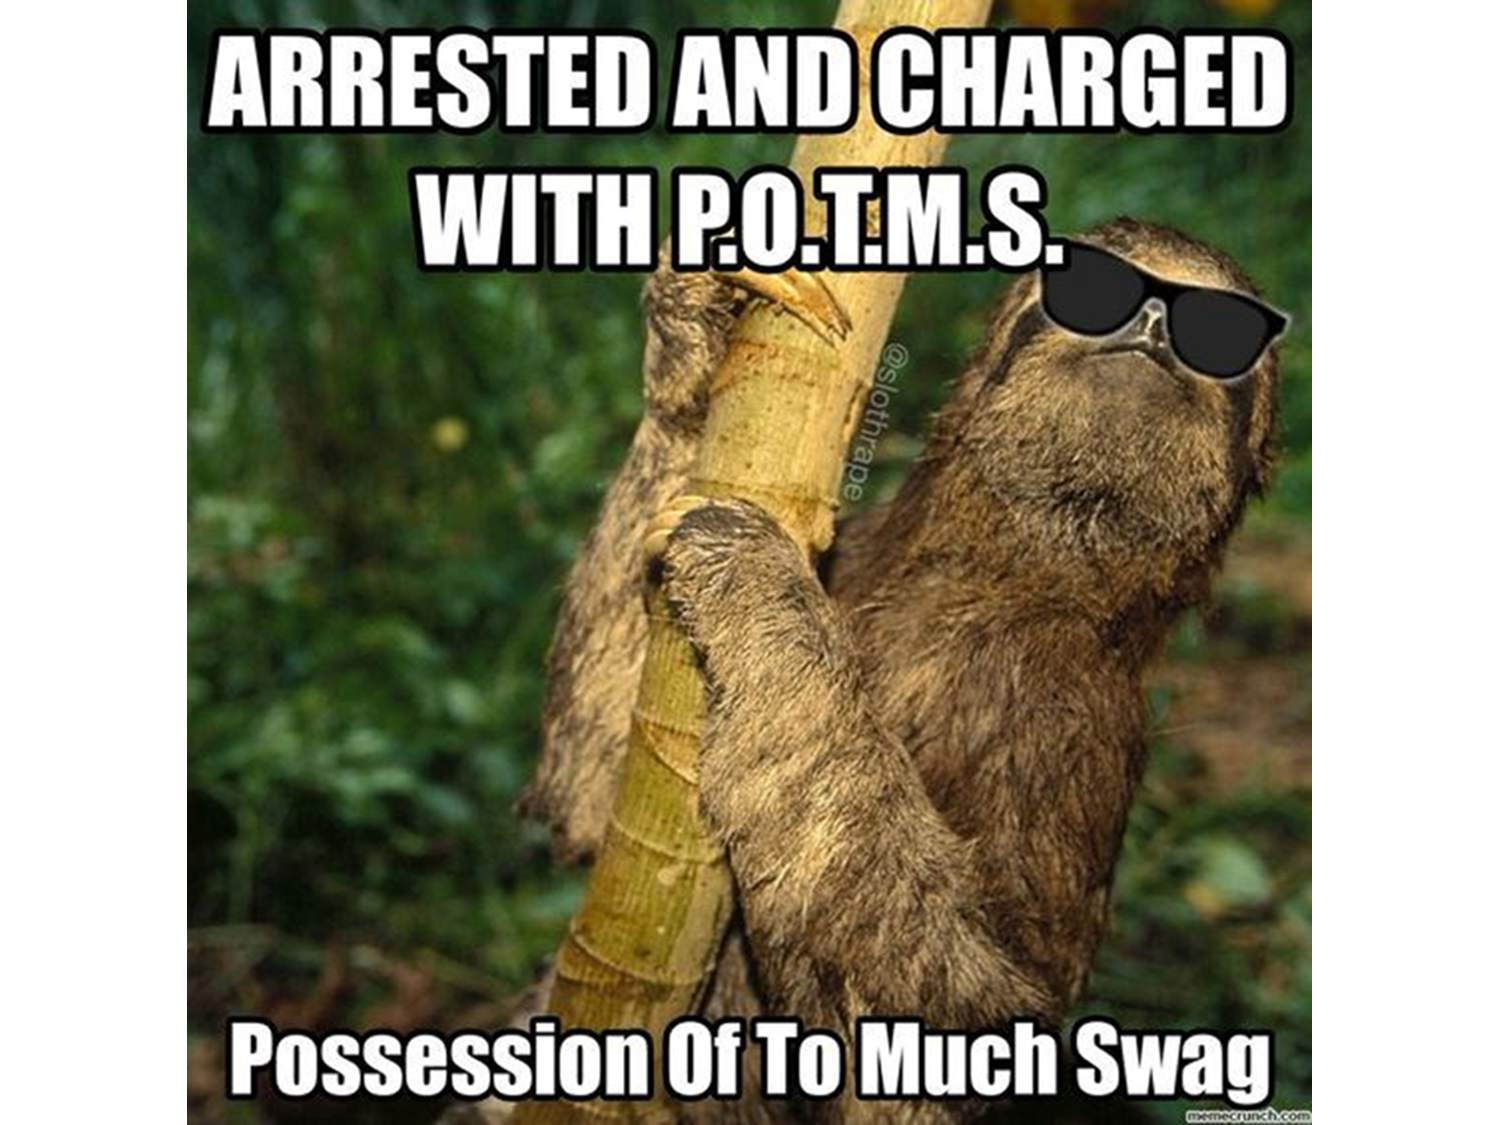 Sloth with shades.